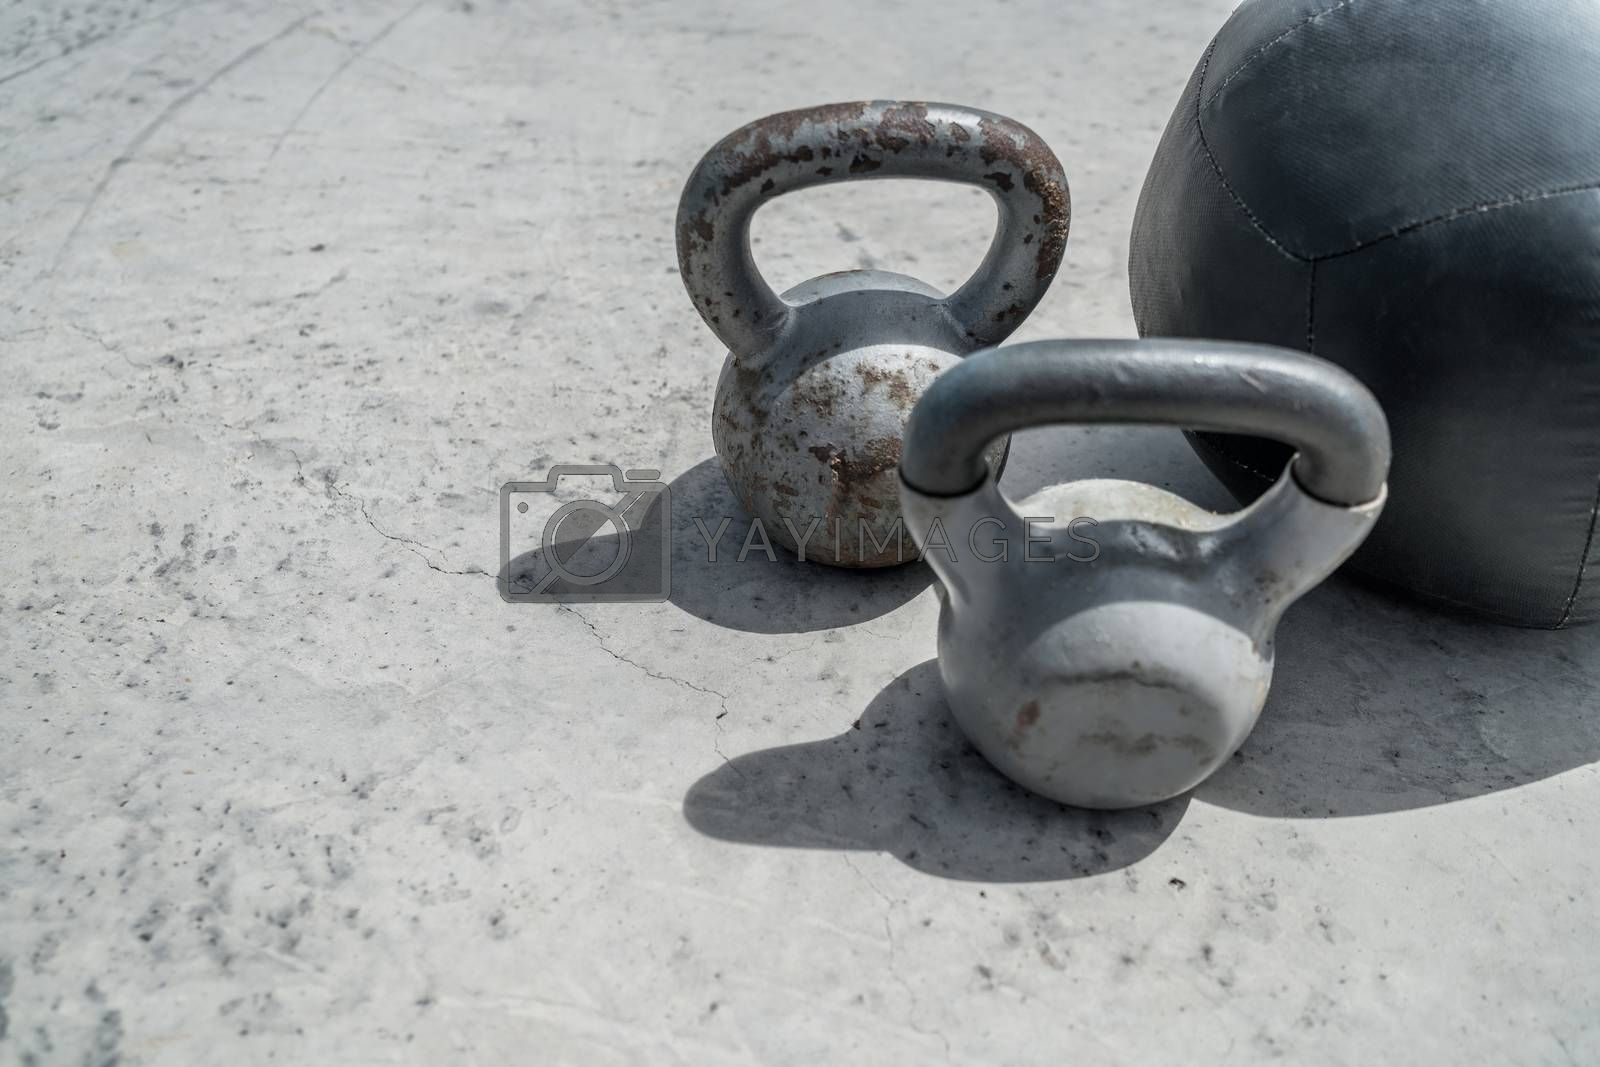 Gym kettlebell weights and medicine ball by Maridav